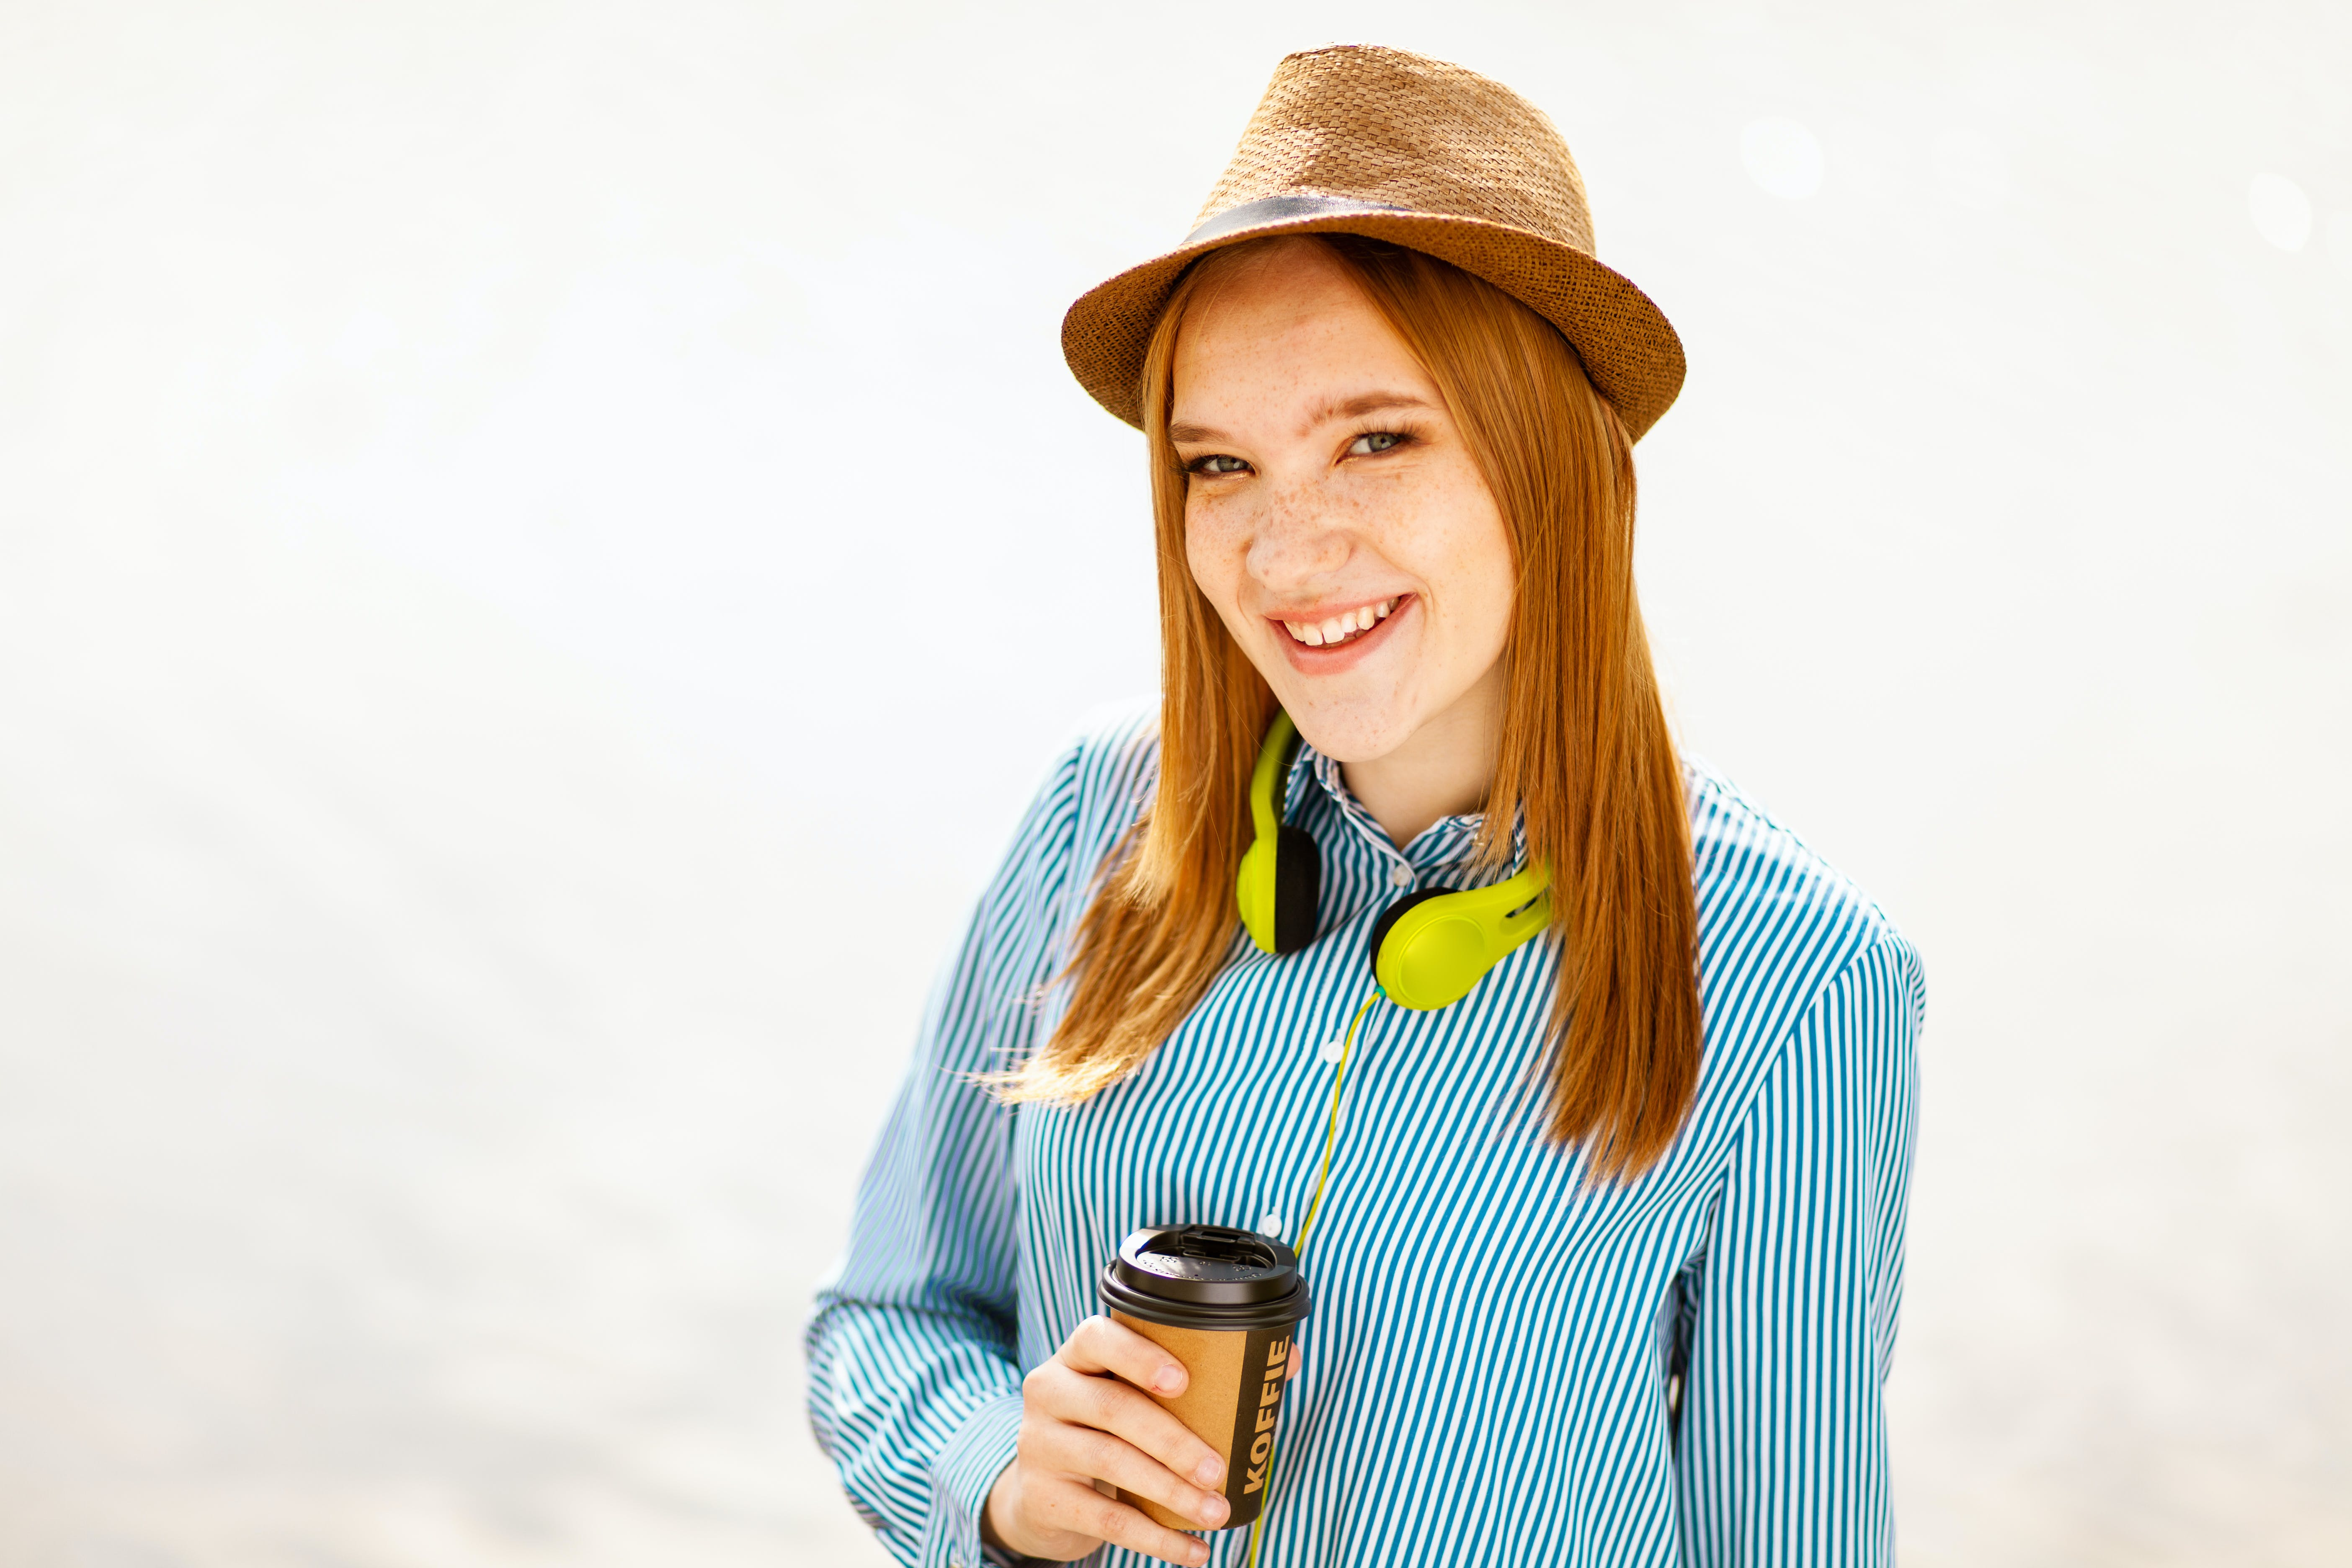 Smiling Woman Wearing Hat Holding Cup